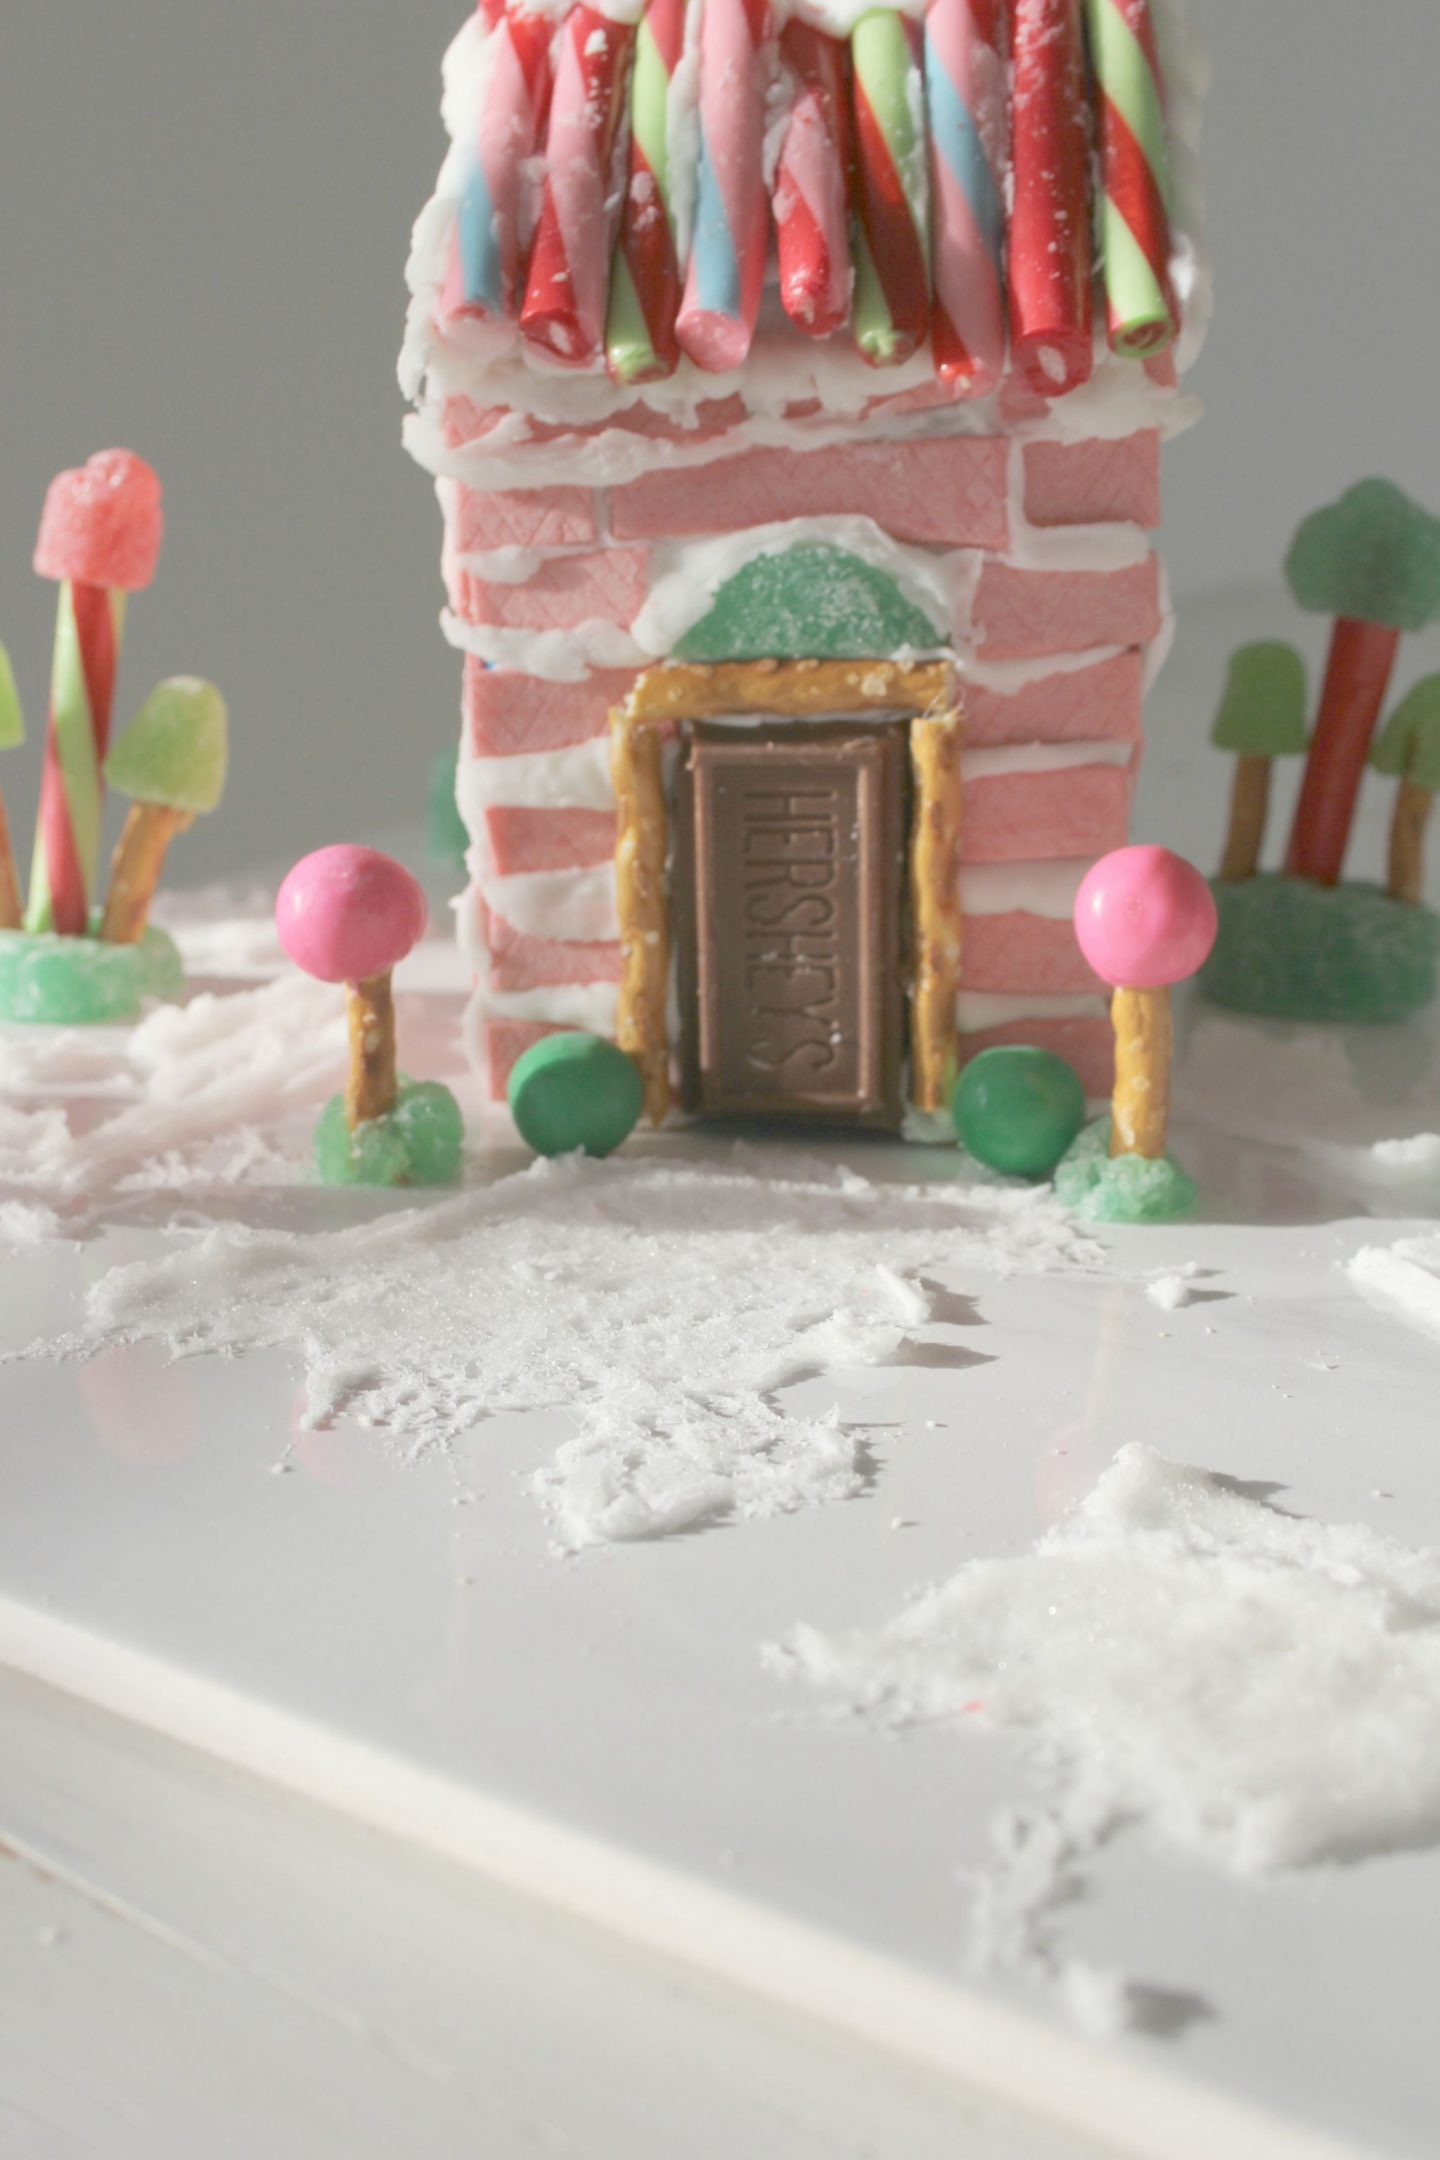 My Holiday Pink Bubblegum Candy House - Hello Lovely Studio